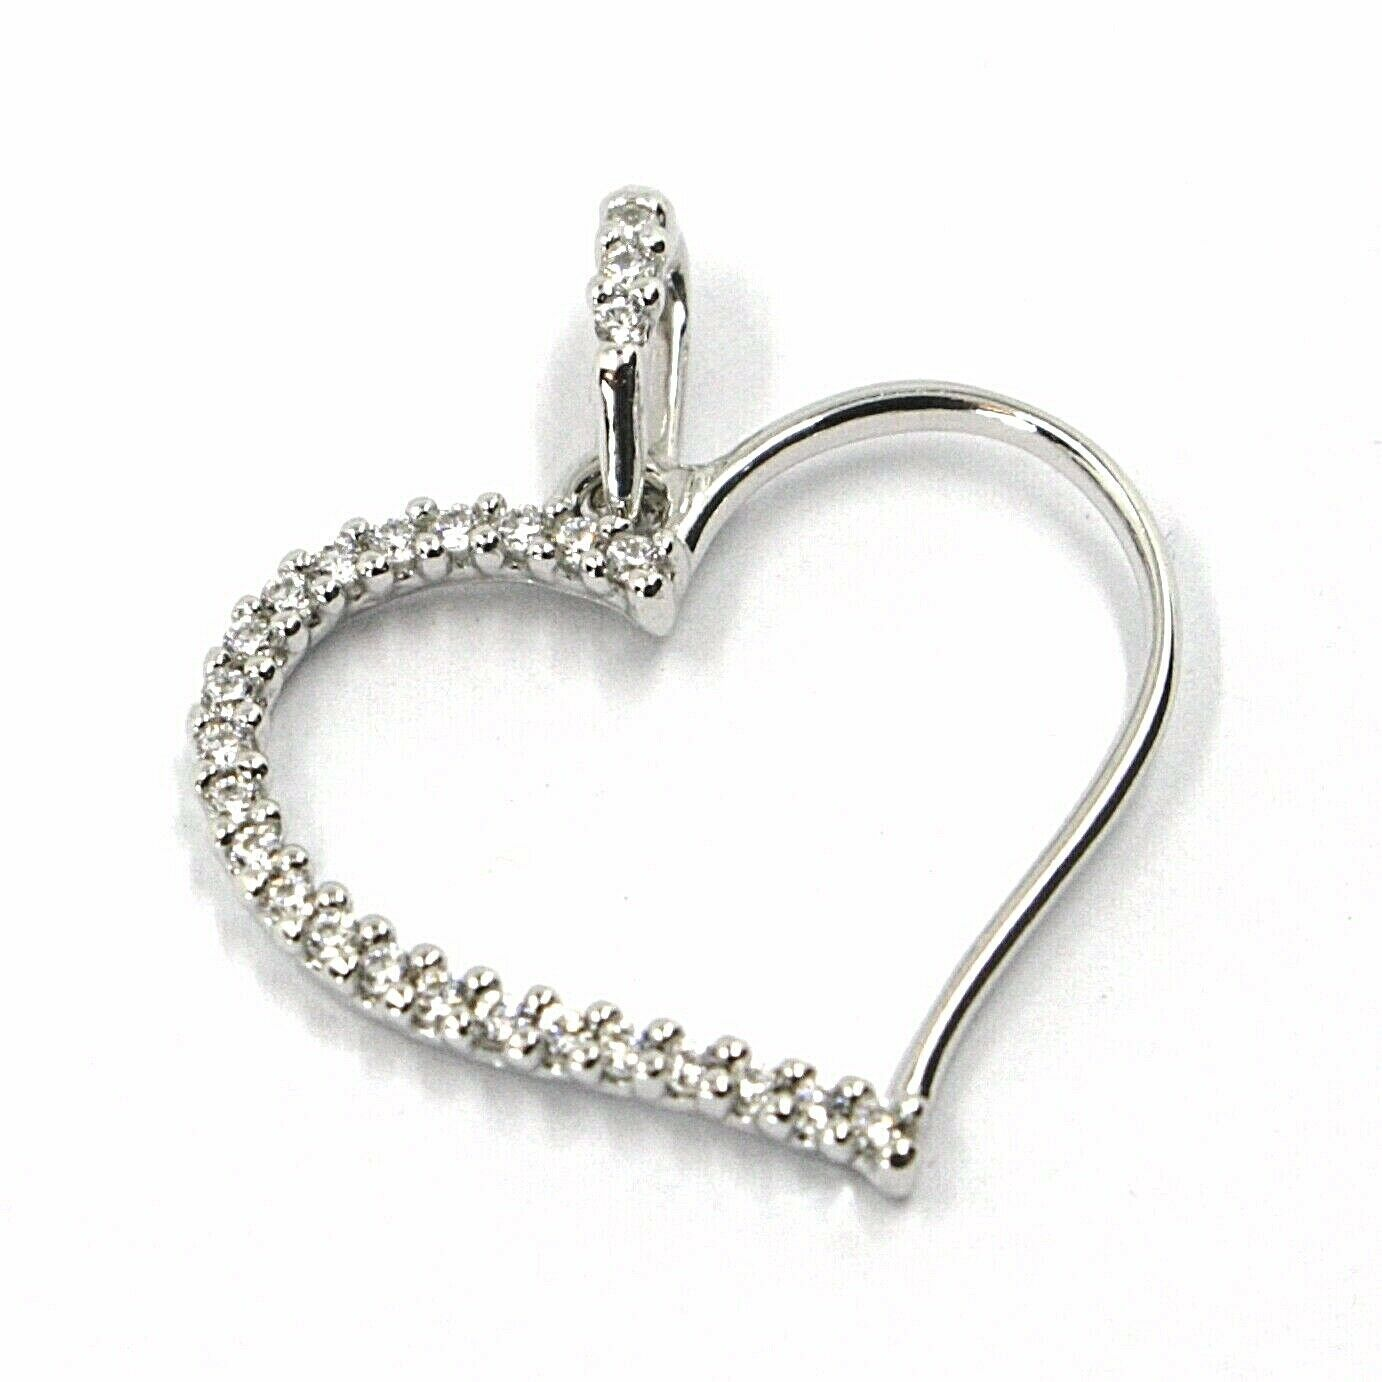 SOLID 18K WHITE GOLD PENDANT HEART WITH CUBIC ZIRCONIA, 16mm, 0.63 inches